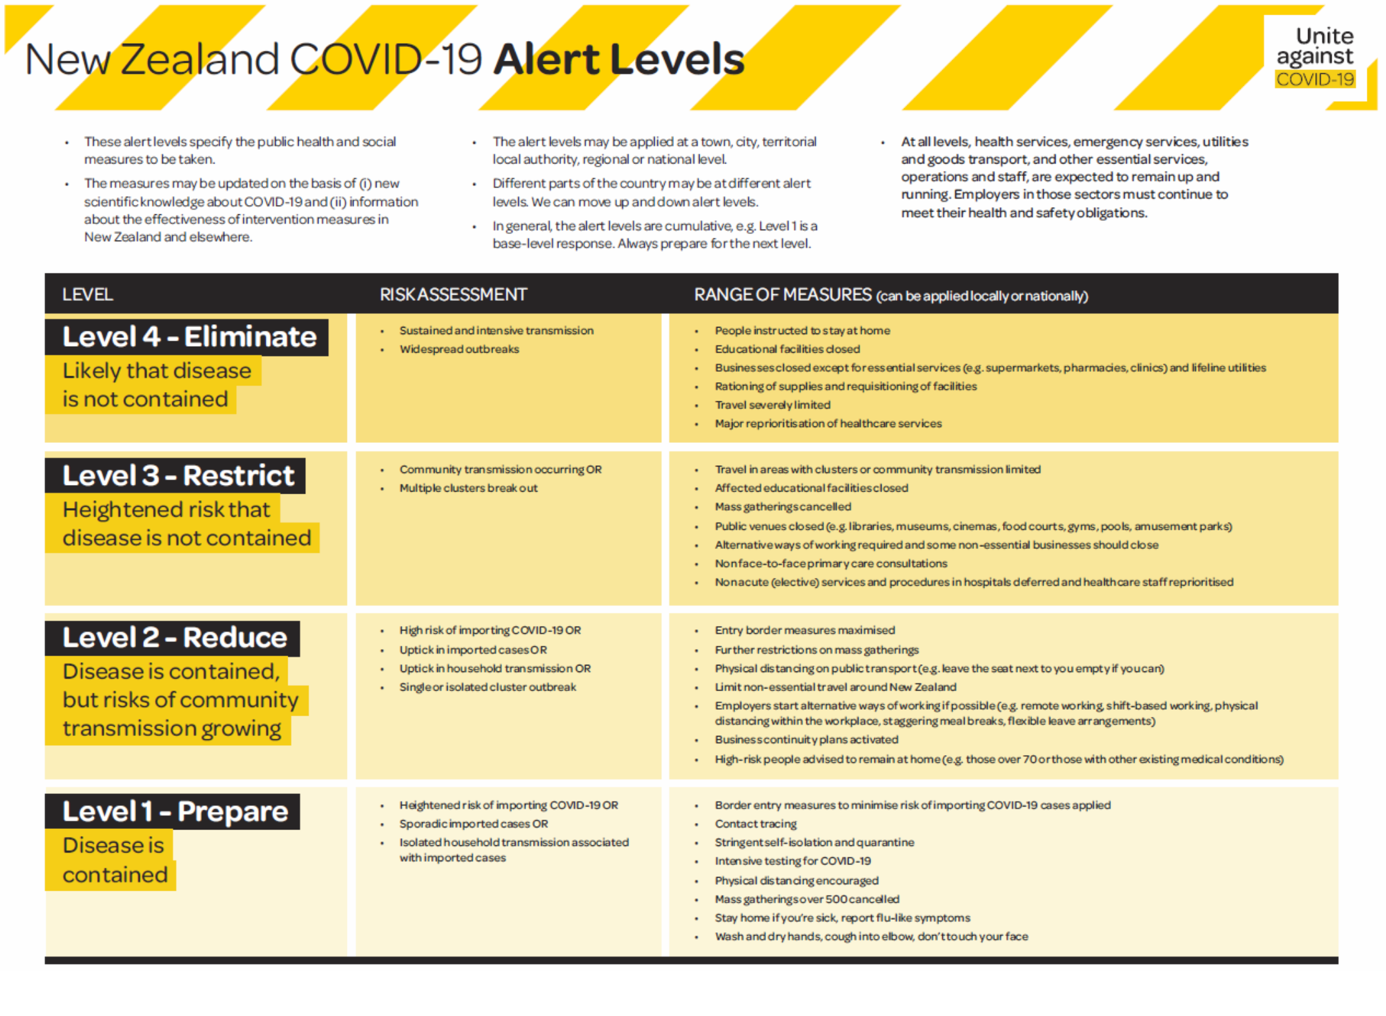 NZ COVID-19 Alert Levels Information